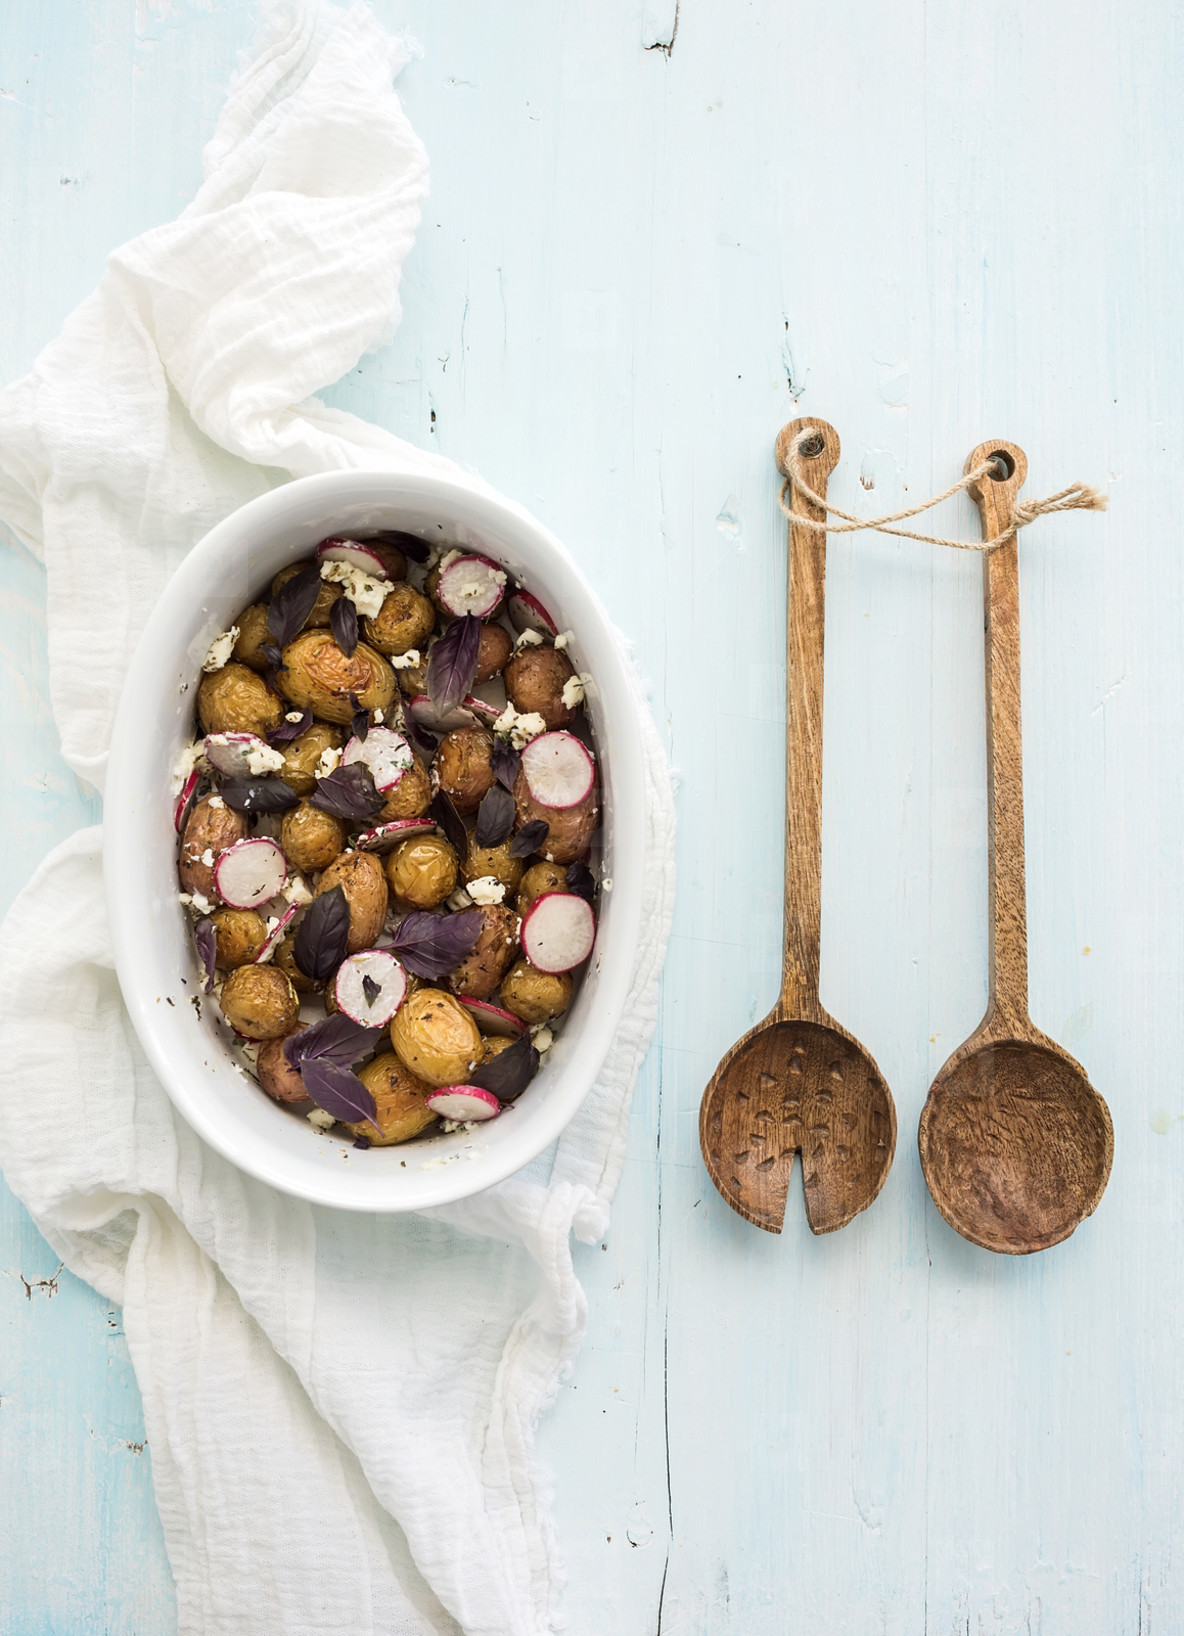 Roast young potato salad with radish and soft cheese in a baking dish over light blue background